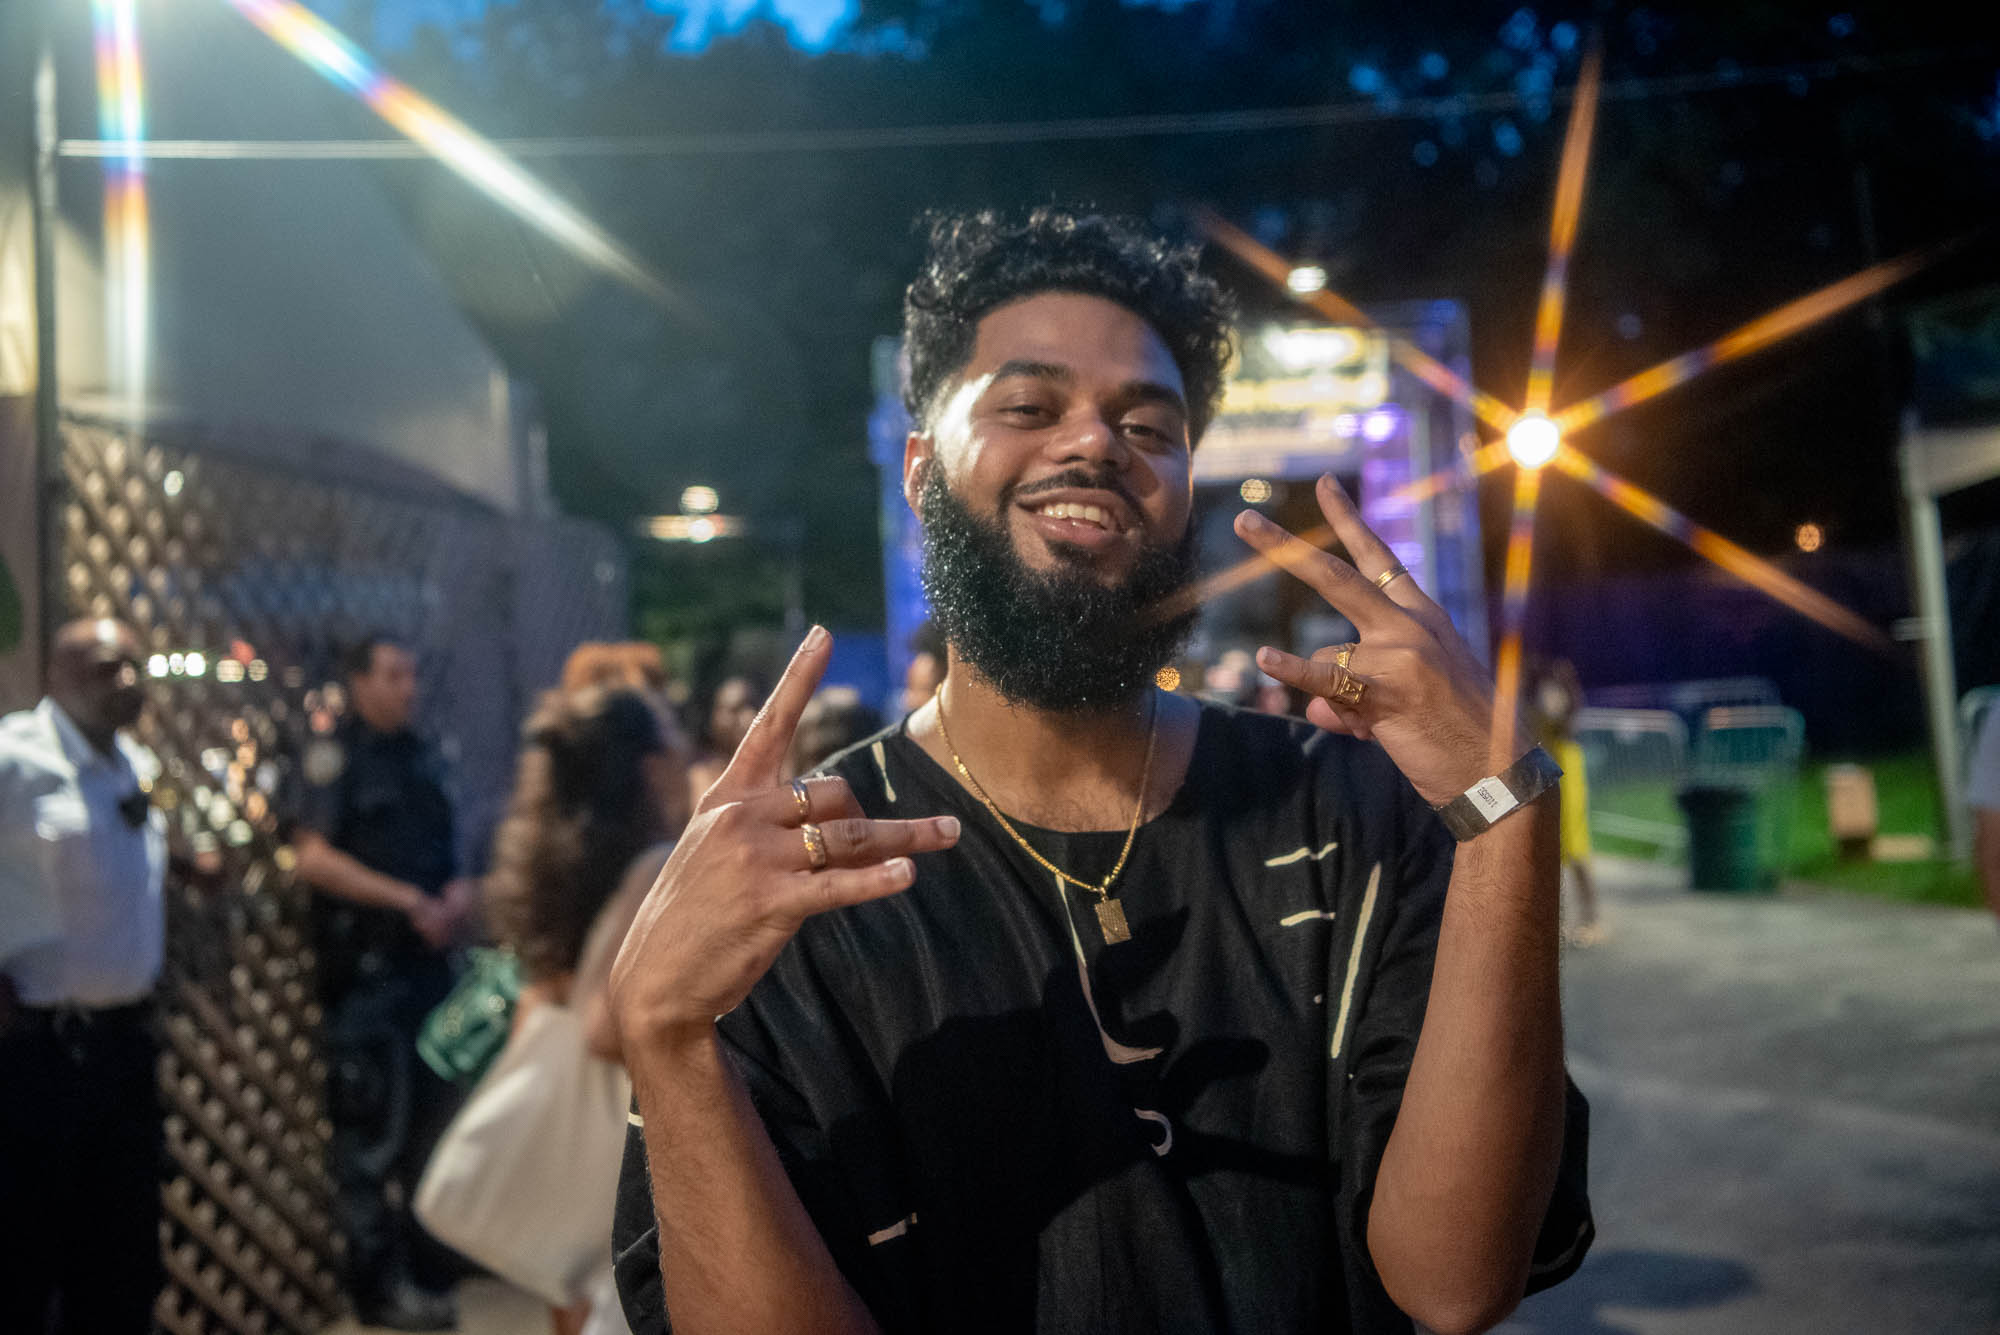 Anik Khan after his performance at BRIC Celebrate Brooklyn! Festival at Prospect Park in Brooklyn, NY on Friday, July 26, 2019.